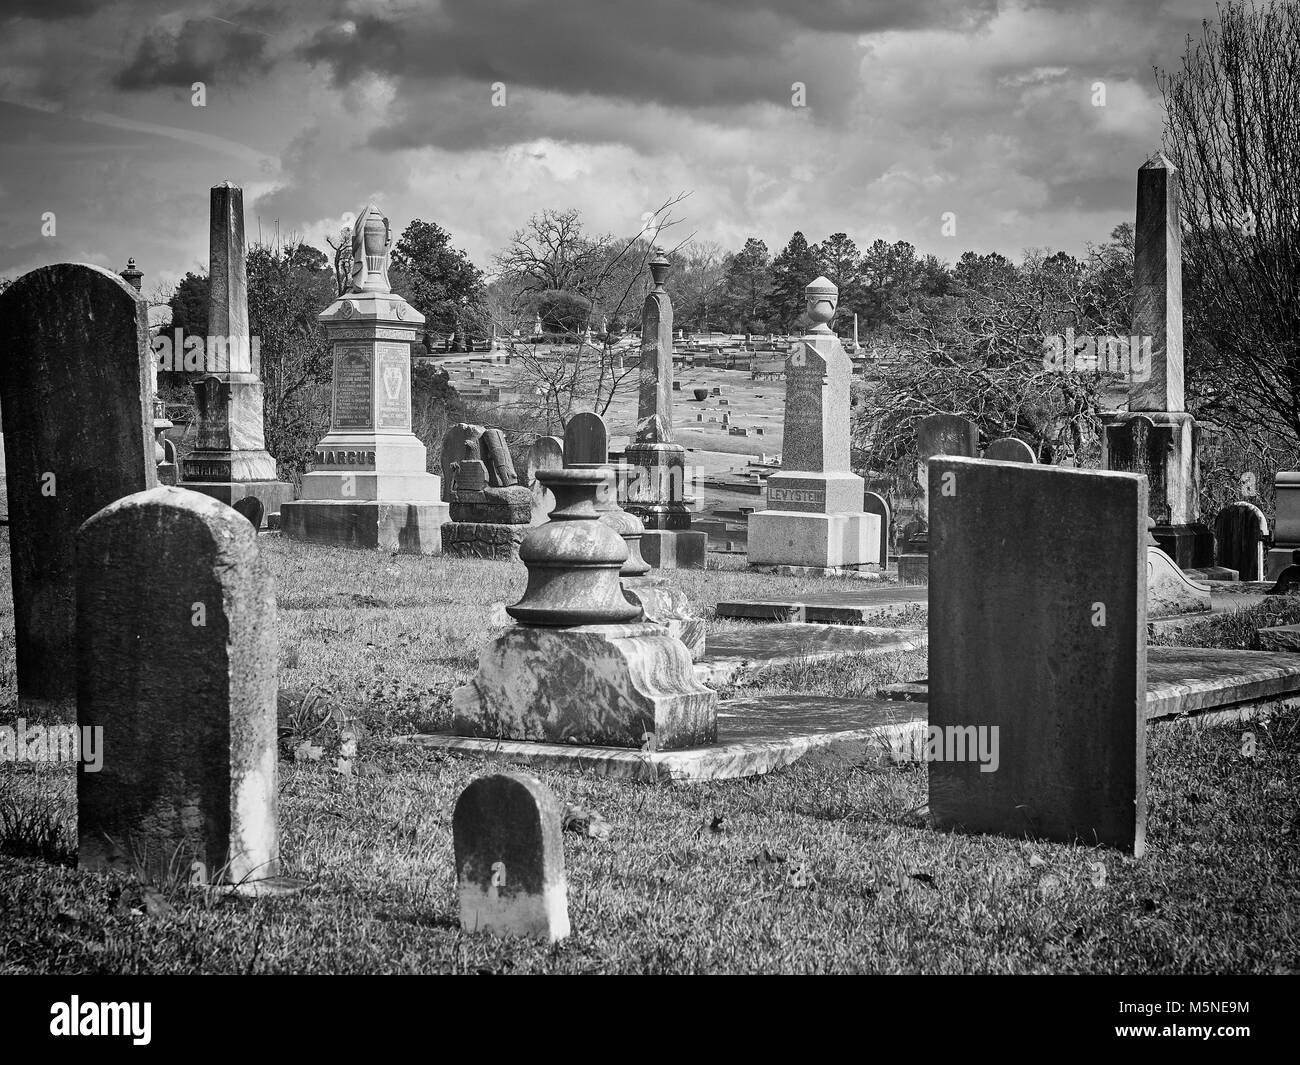 Old Oakwood Cemetery with headstones, gravestones and monuments established in the early 1800's for all faiths - Stock Image